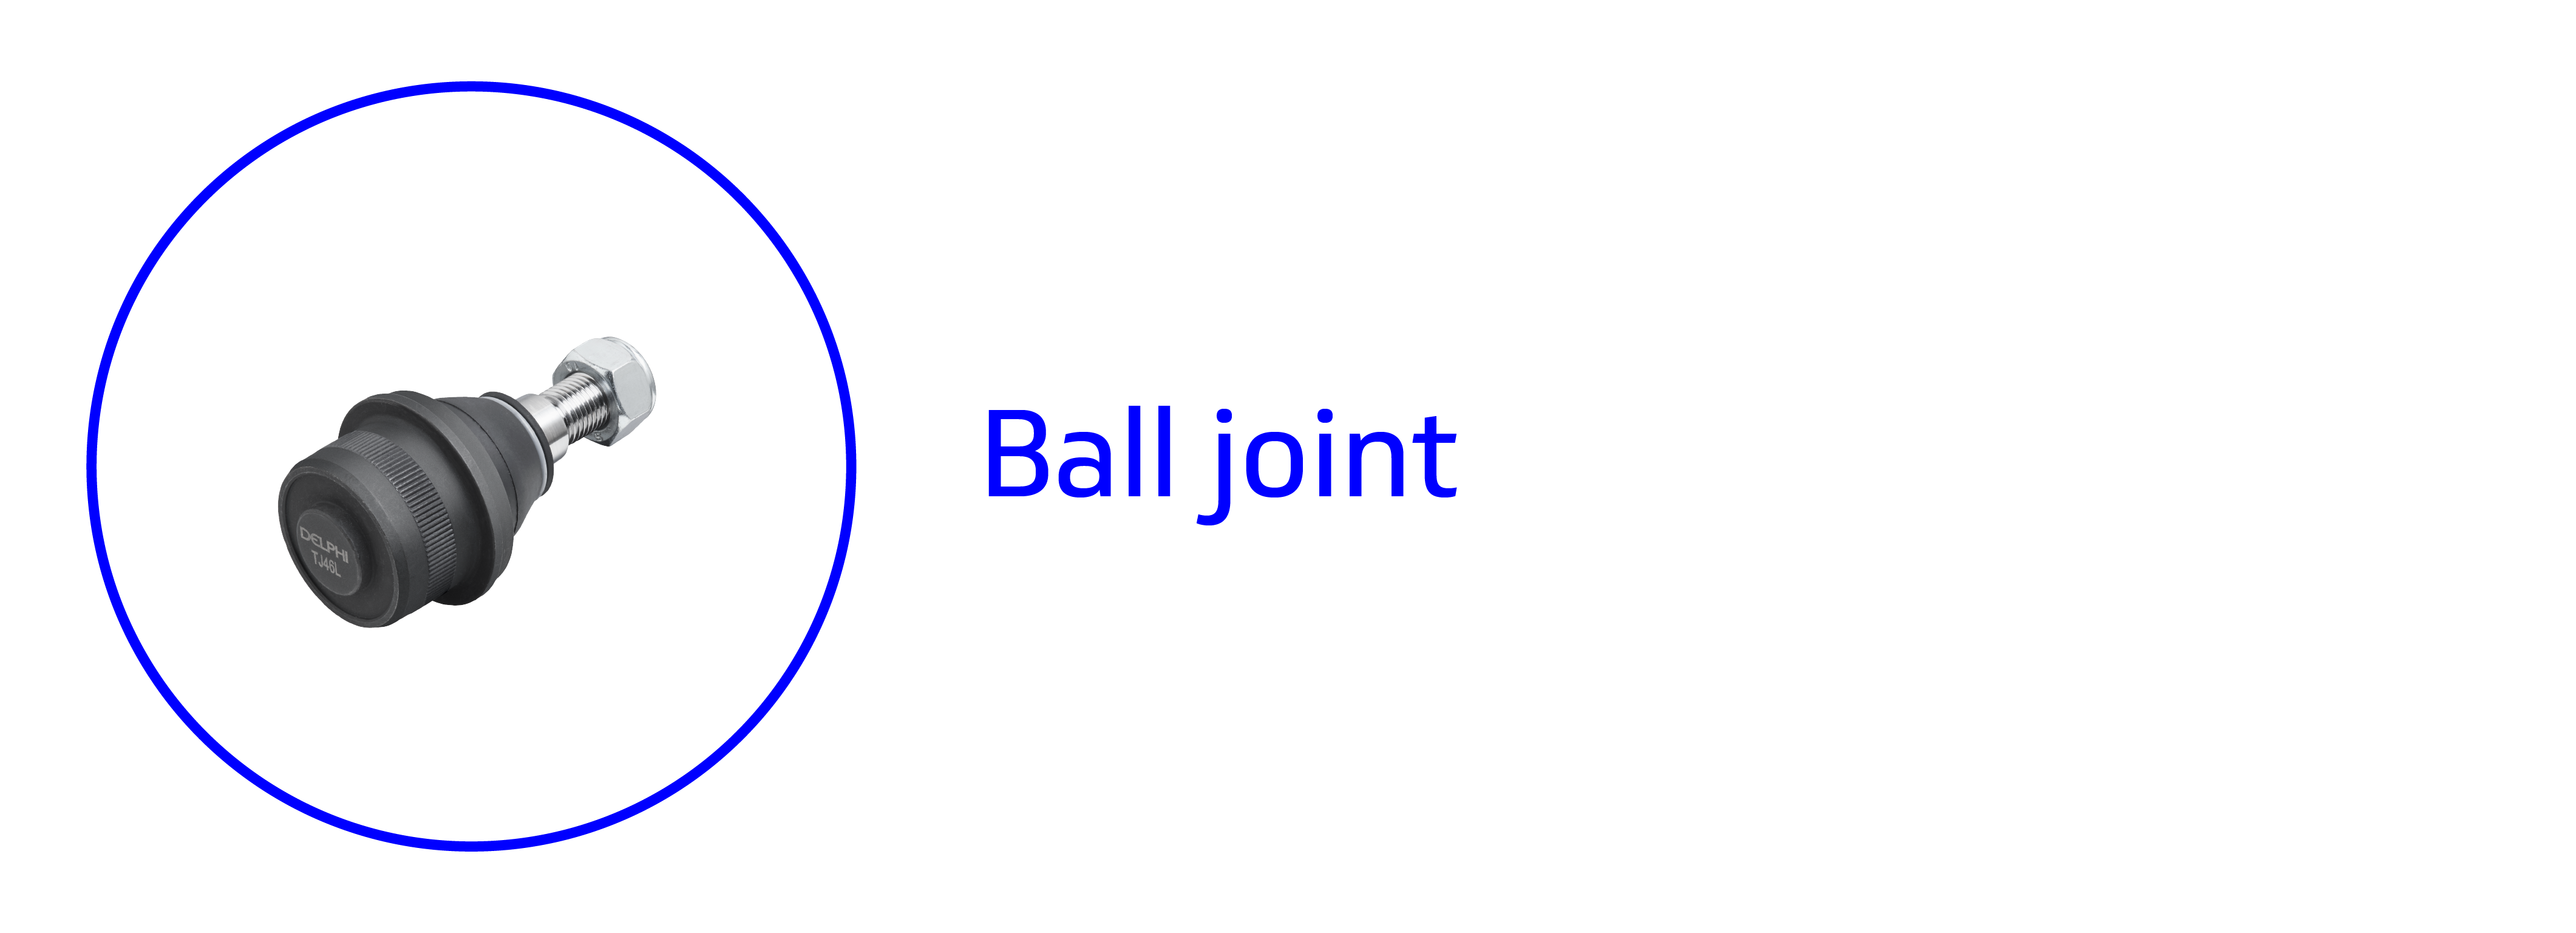 Banner showing a ball joint